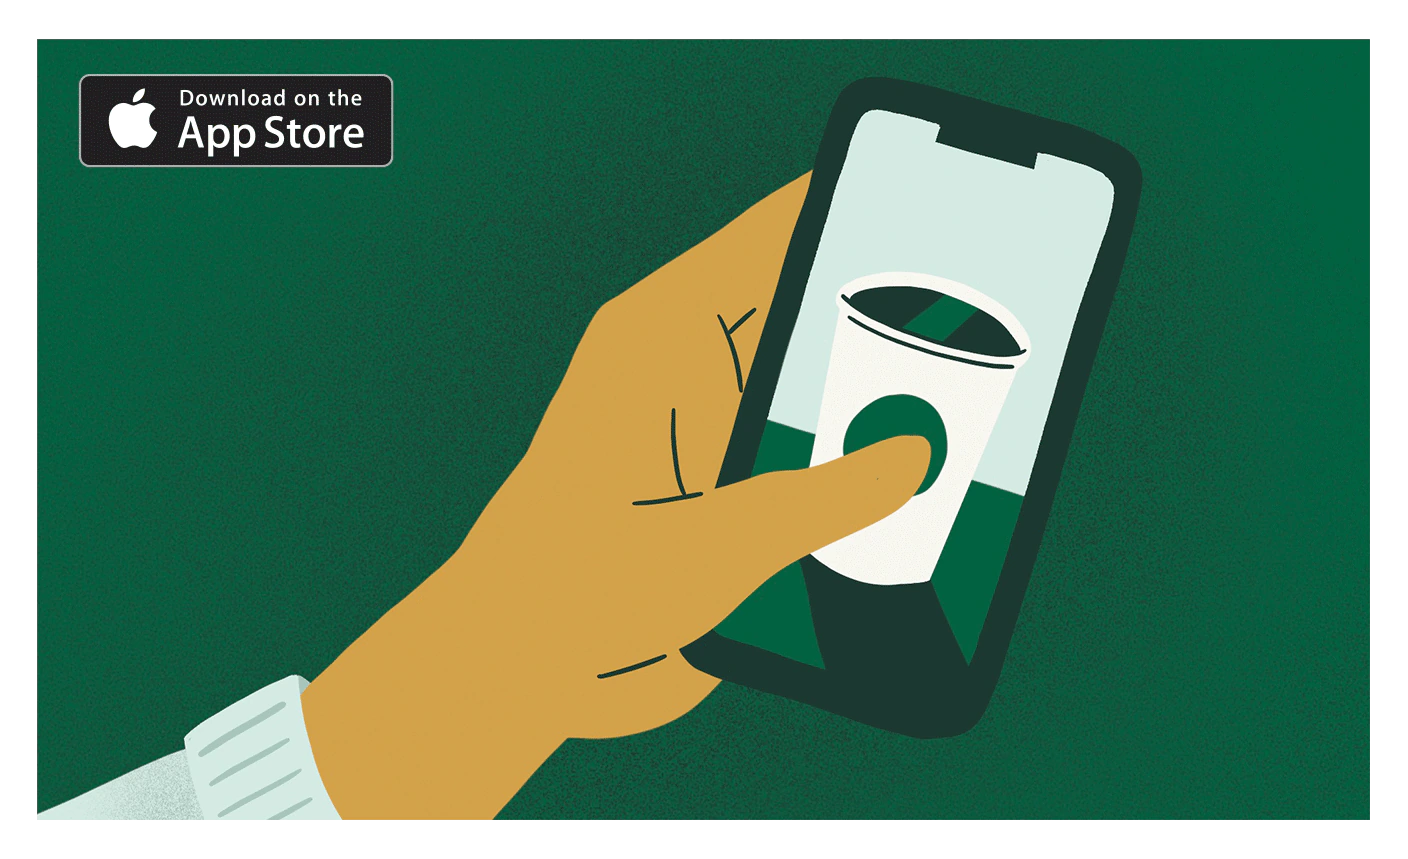 Starbucks app featuring an animated hand holding a phone with an animated Starbucks cup on the screen in front of a green background.